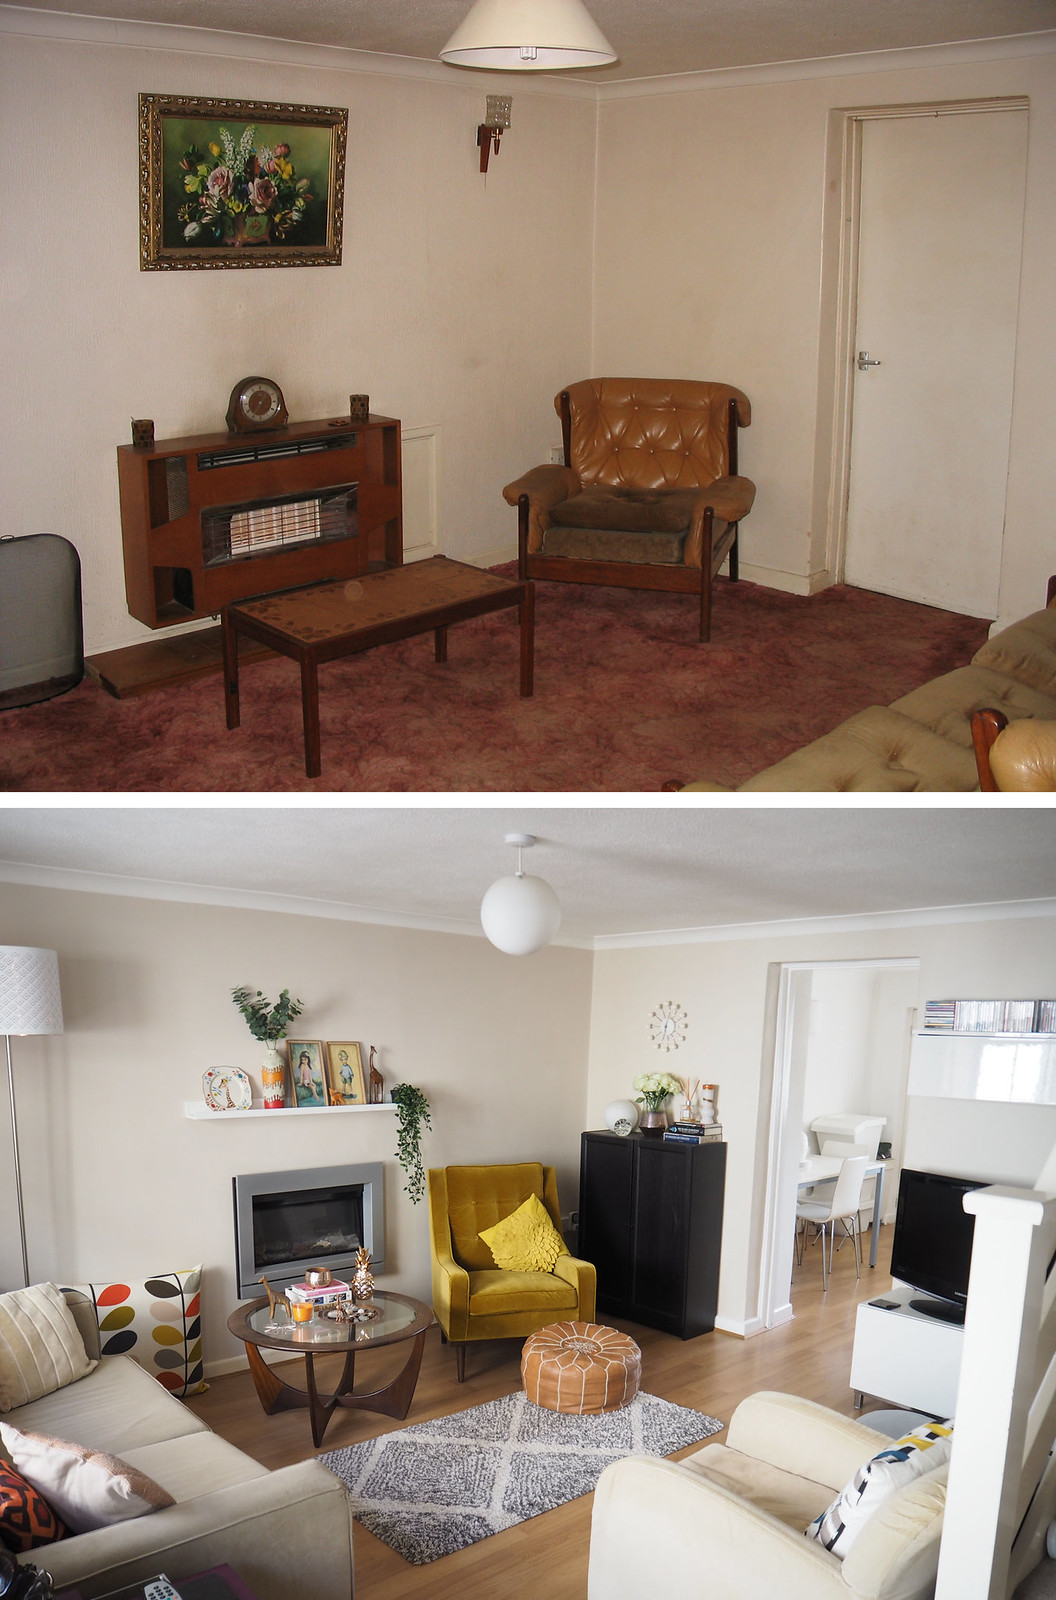 Living room makeover before and after - mid century style \ modern interiors | Not Dressed As Lamb blog